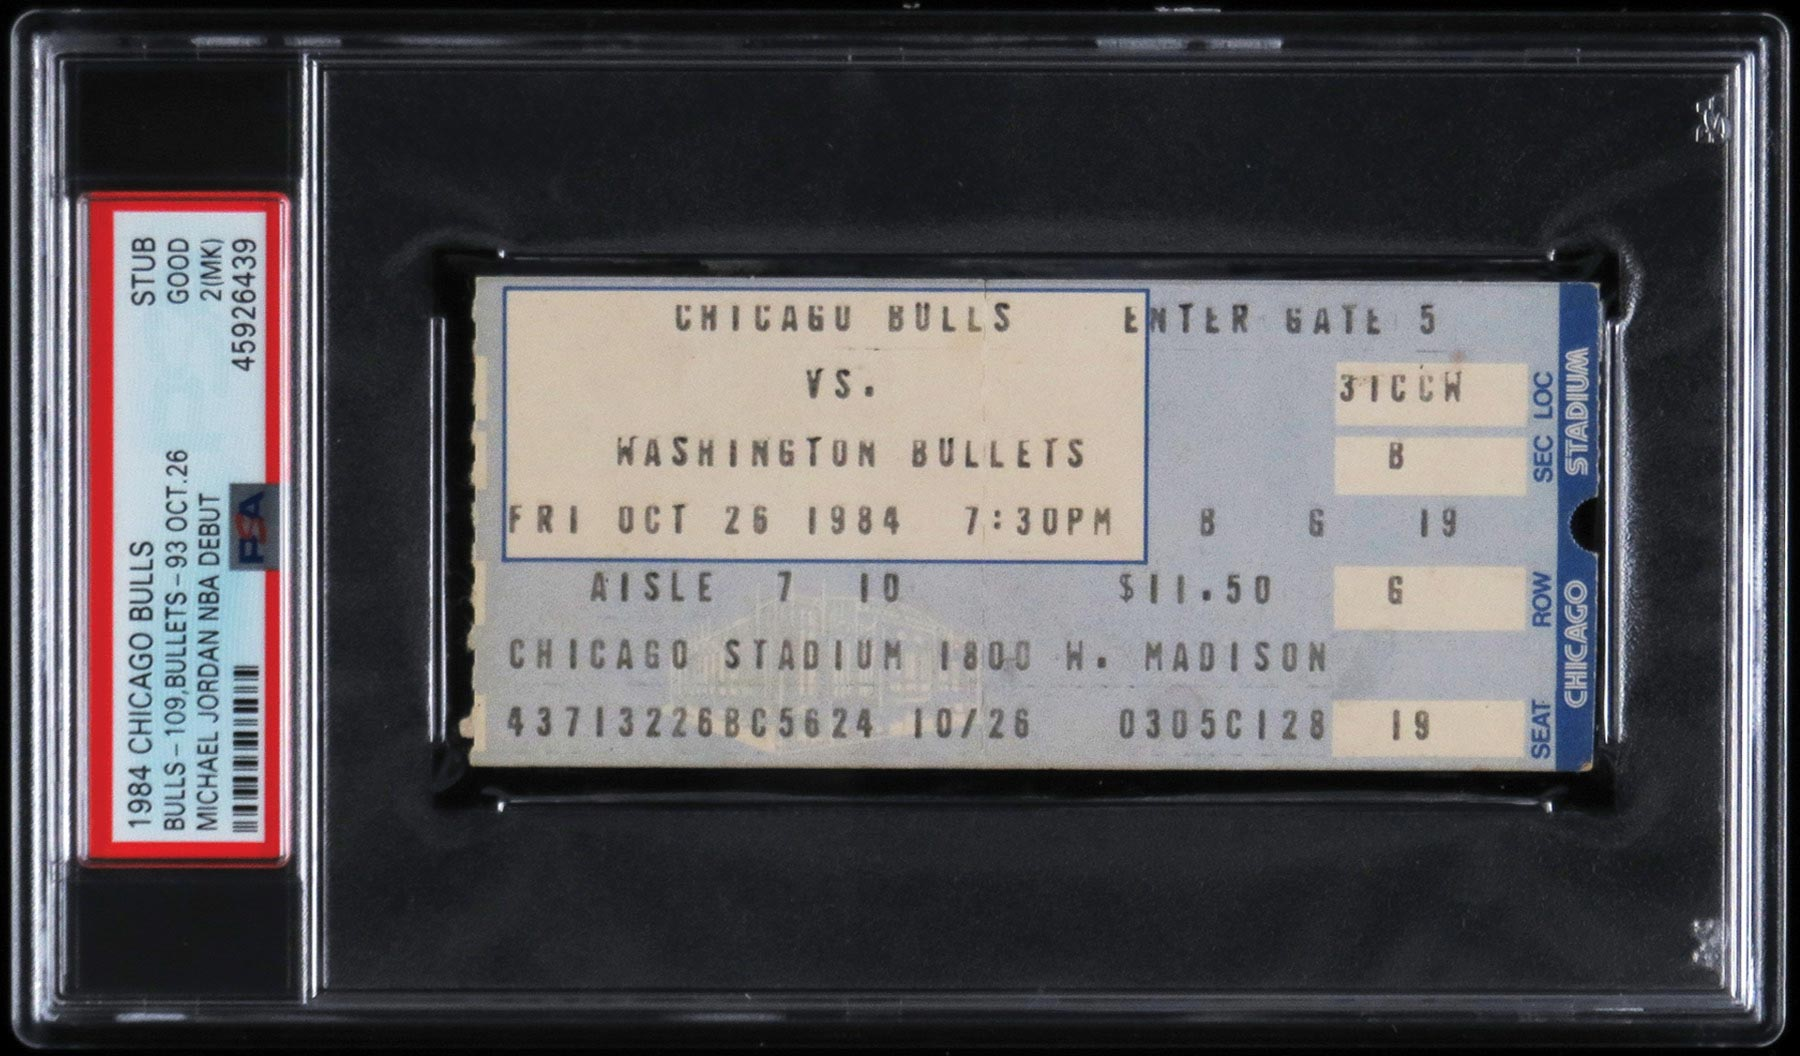 A ticket from Michael Jordan's NBA debut sold for nearly $25,000.